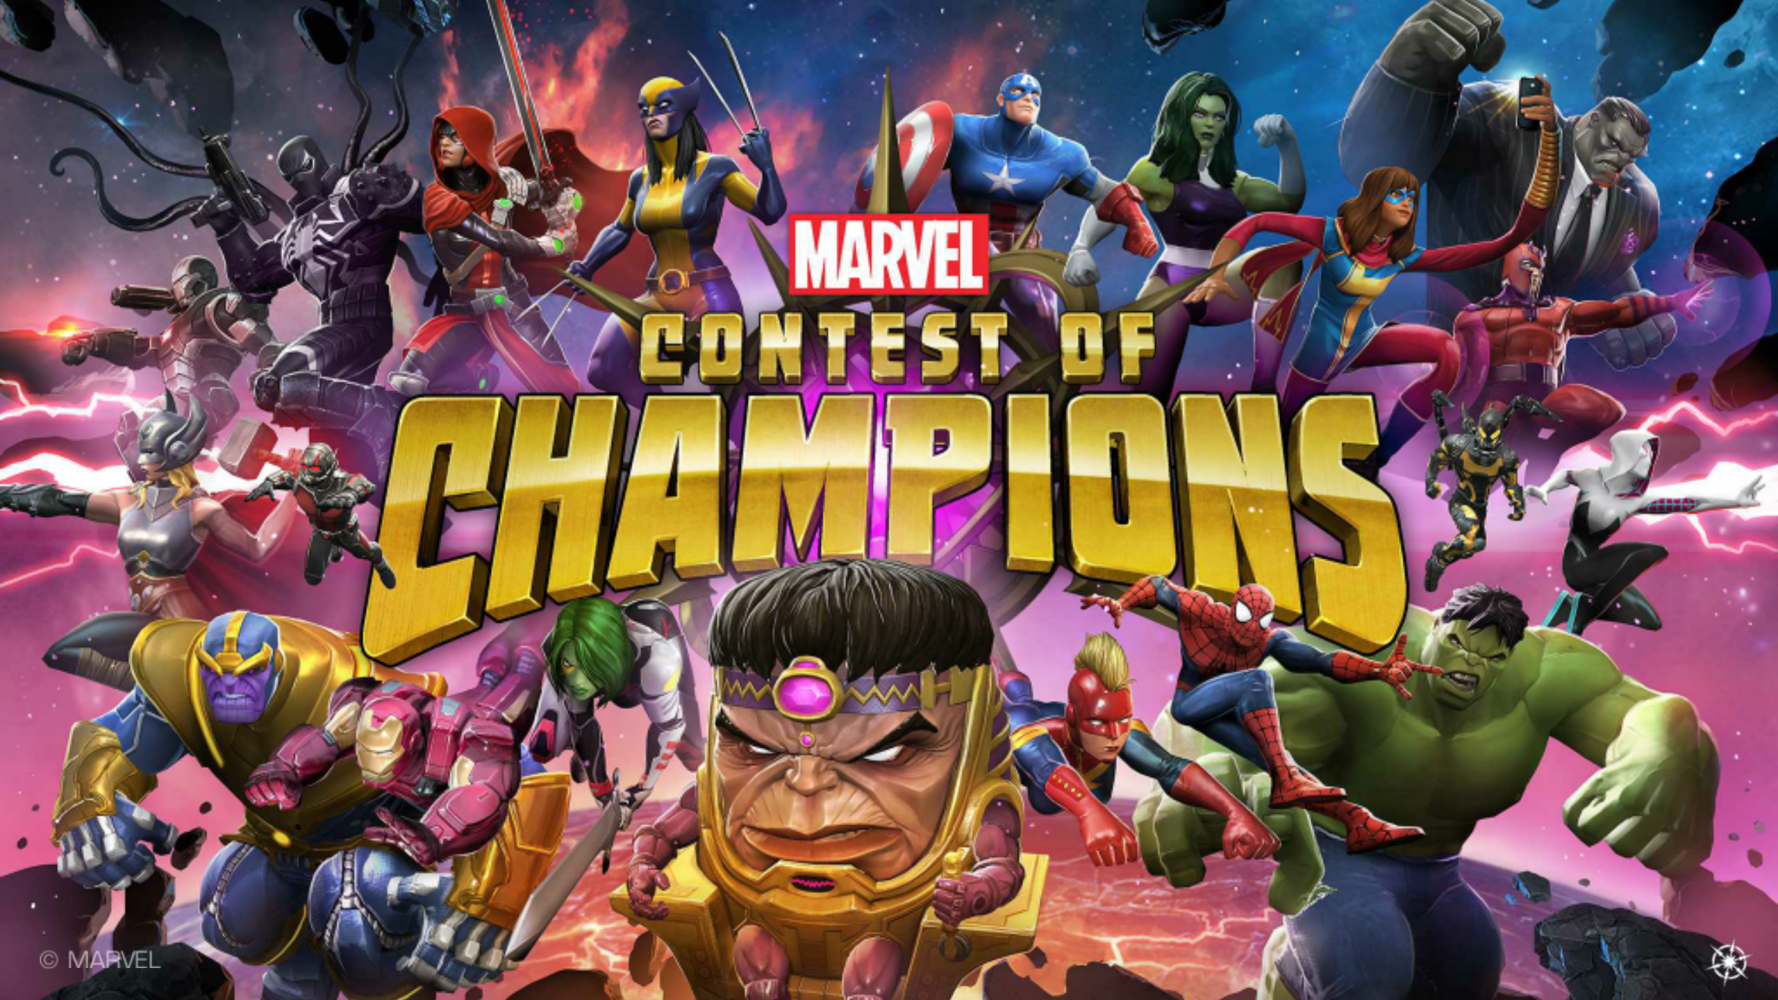 Marvel Contest of Champions Fight Win Repeat review